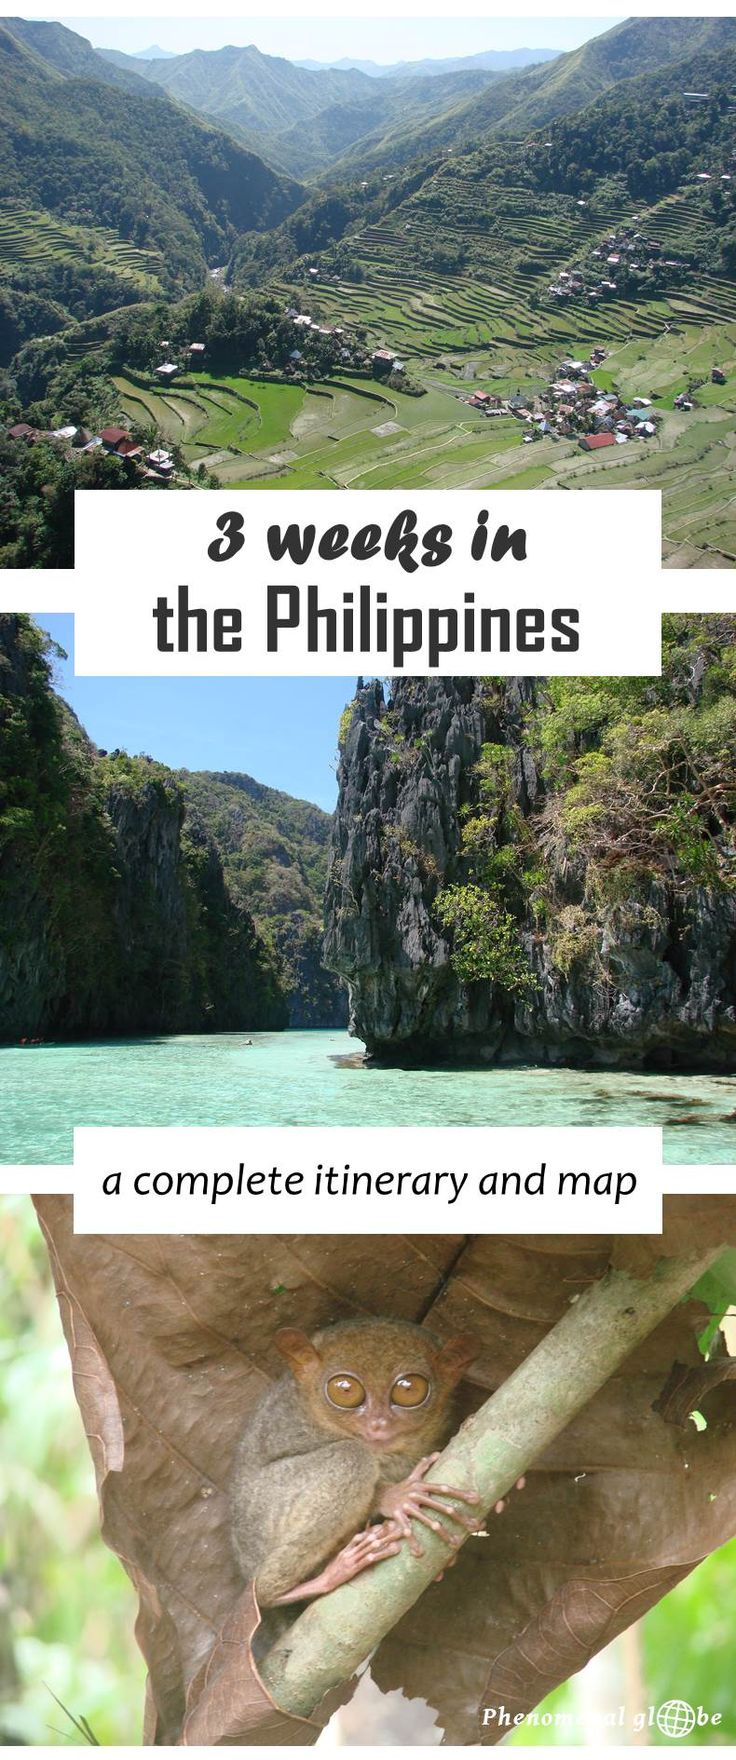 All you need to know about getting from A to B in the Philippines, detailed information about transport plus map. Some of the highlights: hiking in Banaue (Luzon), island hopping in El Nido (Palawan) and sightseeing on Bohol.                                                                                                                                                     More